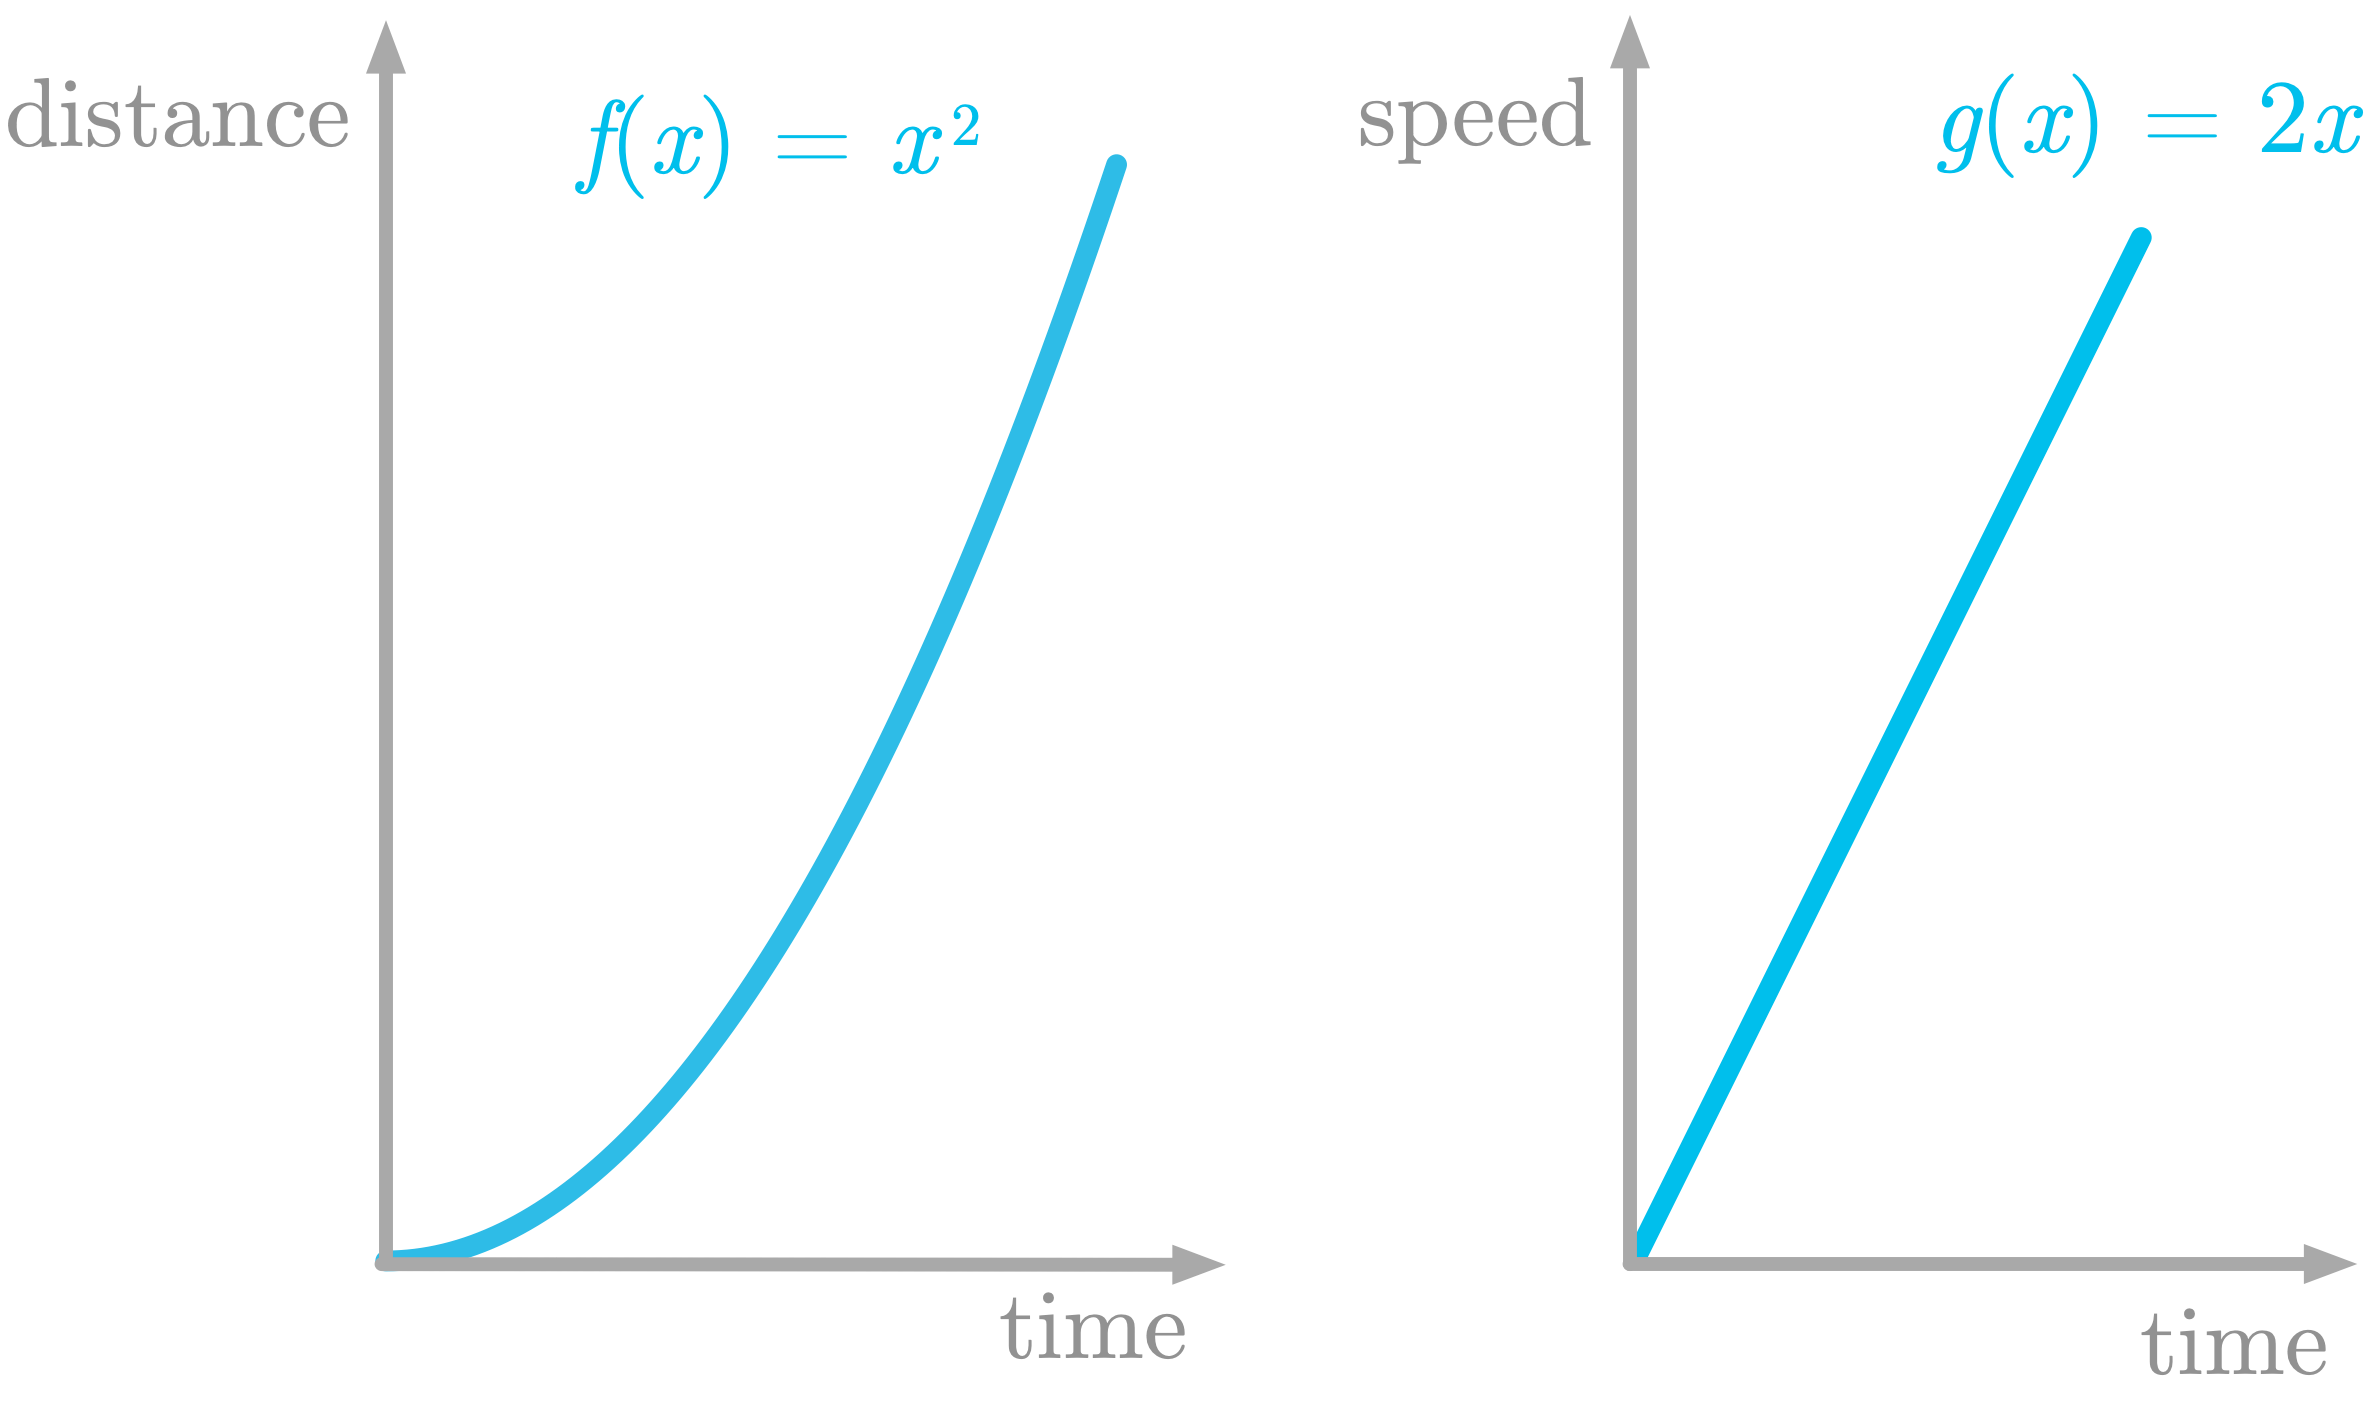 Figure 6: The left panel shows $f(x)$ which is the distance as a function of time, and the right panel its derivative $g(x)$, which is the speed as a function of time.